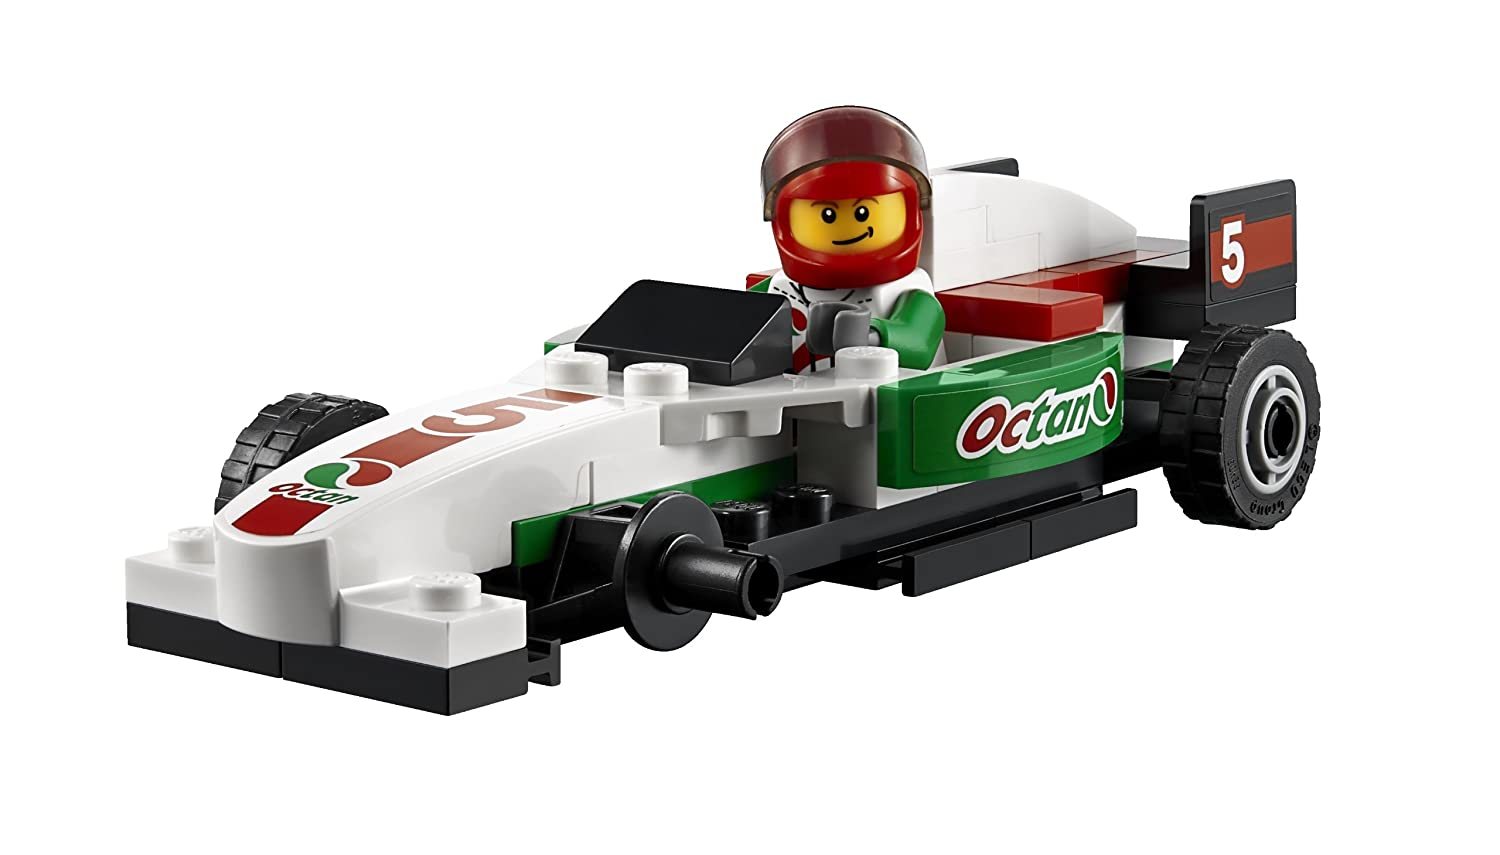 LEGO City 60025 Grand Prix Truck Toy Building Set 6025049